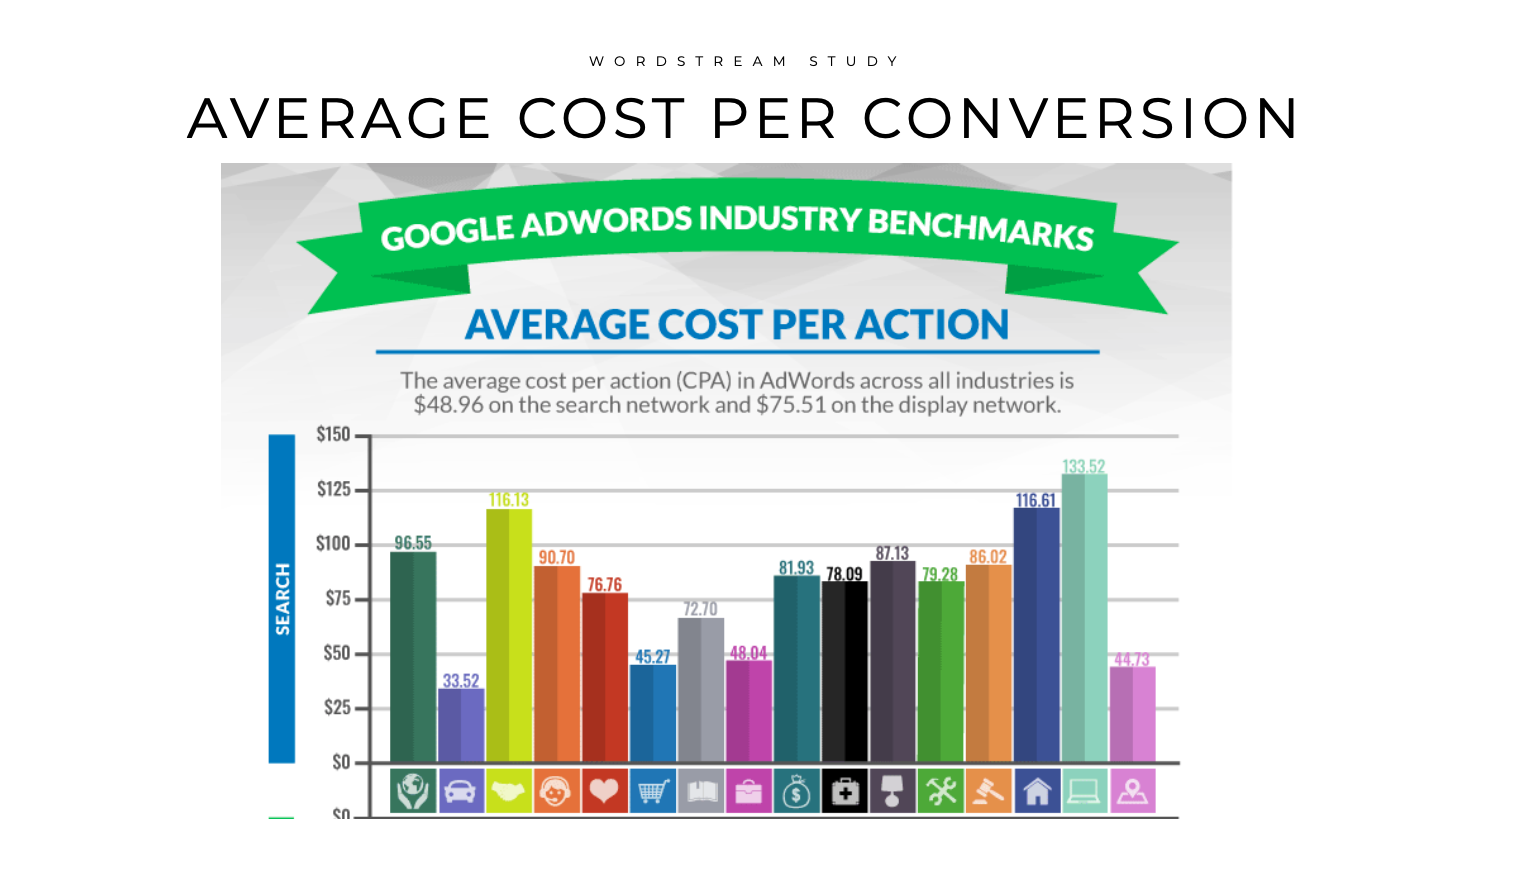 Wordstream Study graphic shows an average cost per patient as $78.01 in their study in 2018.